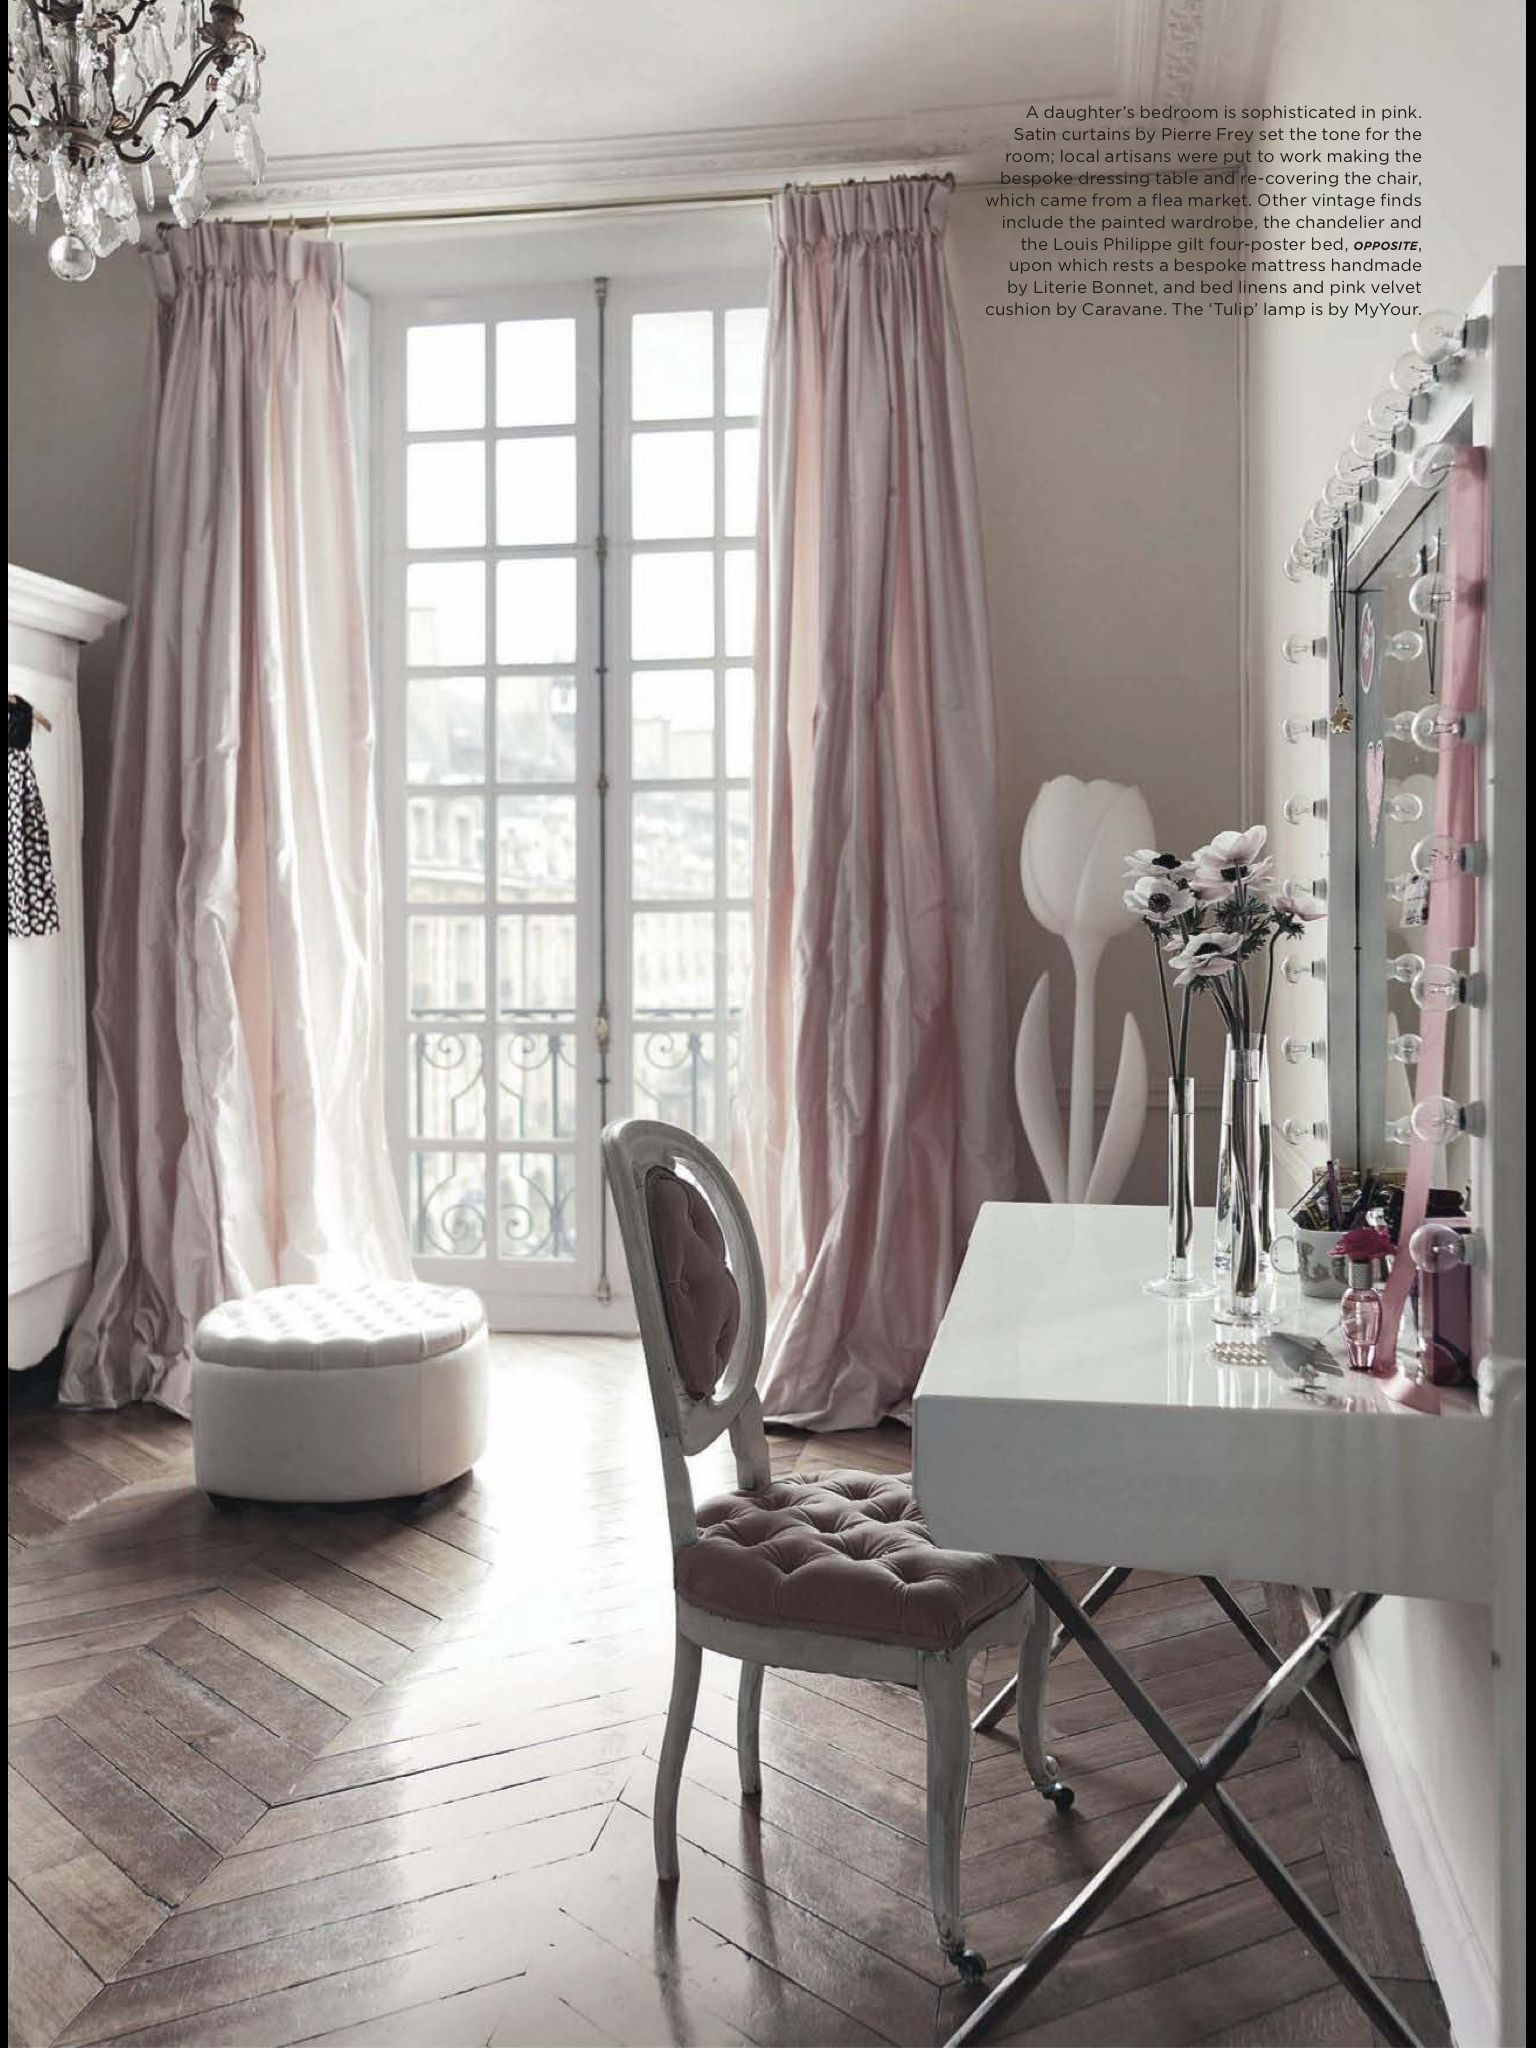 Blush curtains with grey walls and wooden floor pattern glamor elegance fabulous vanity room